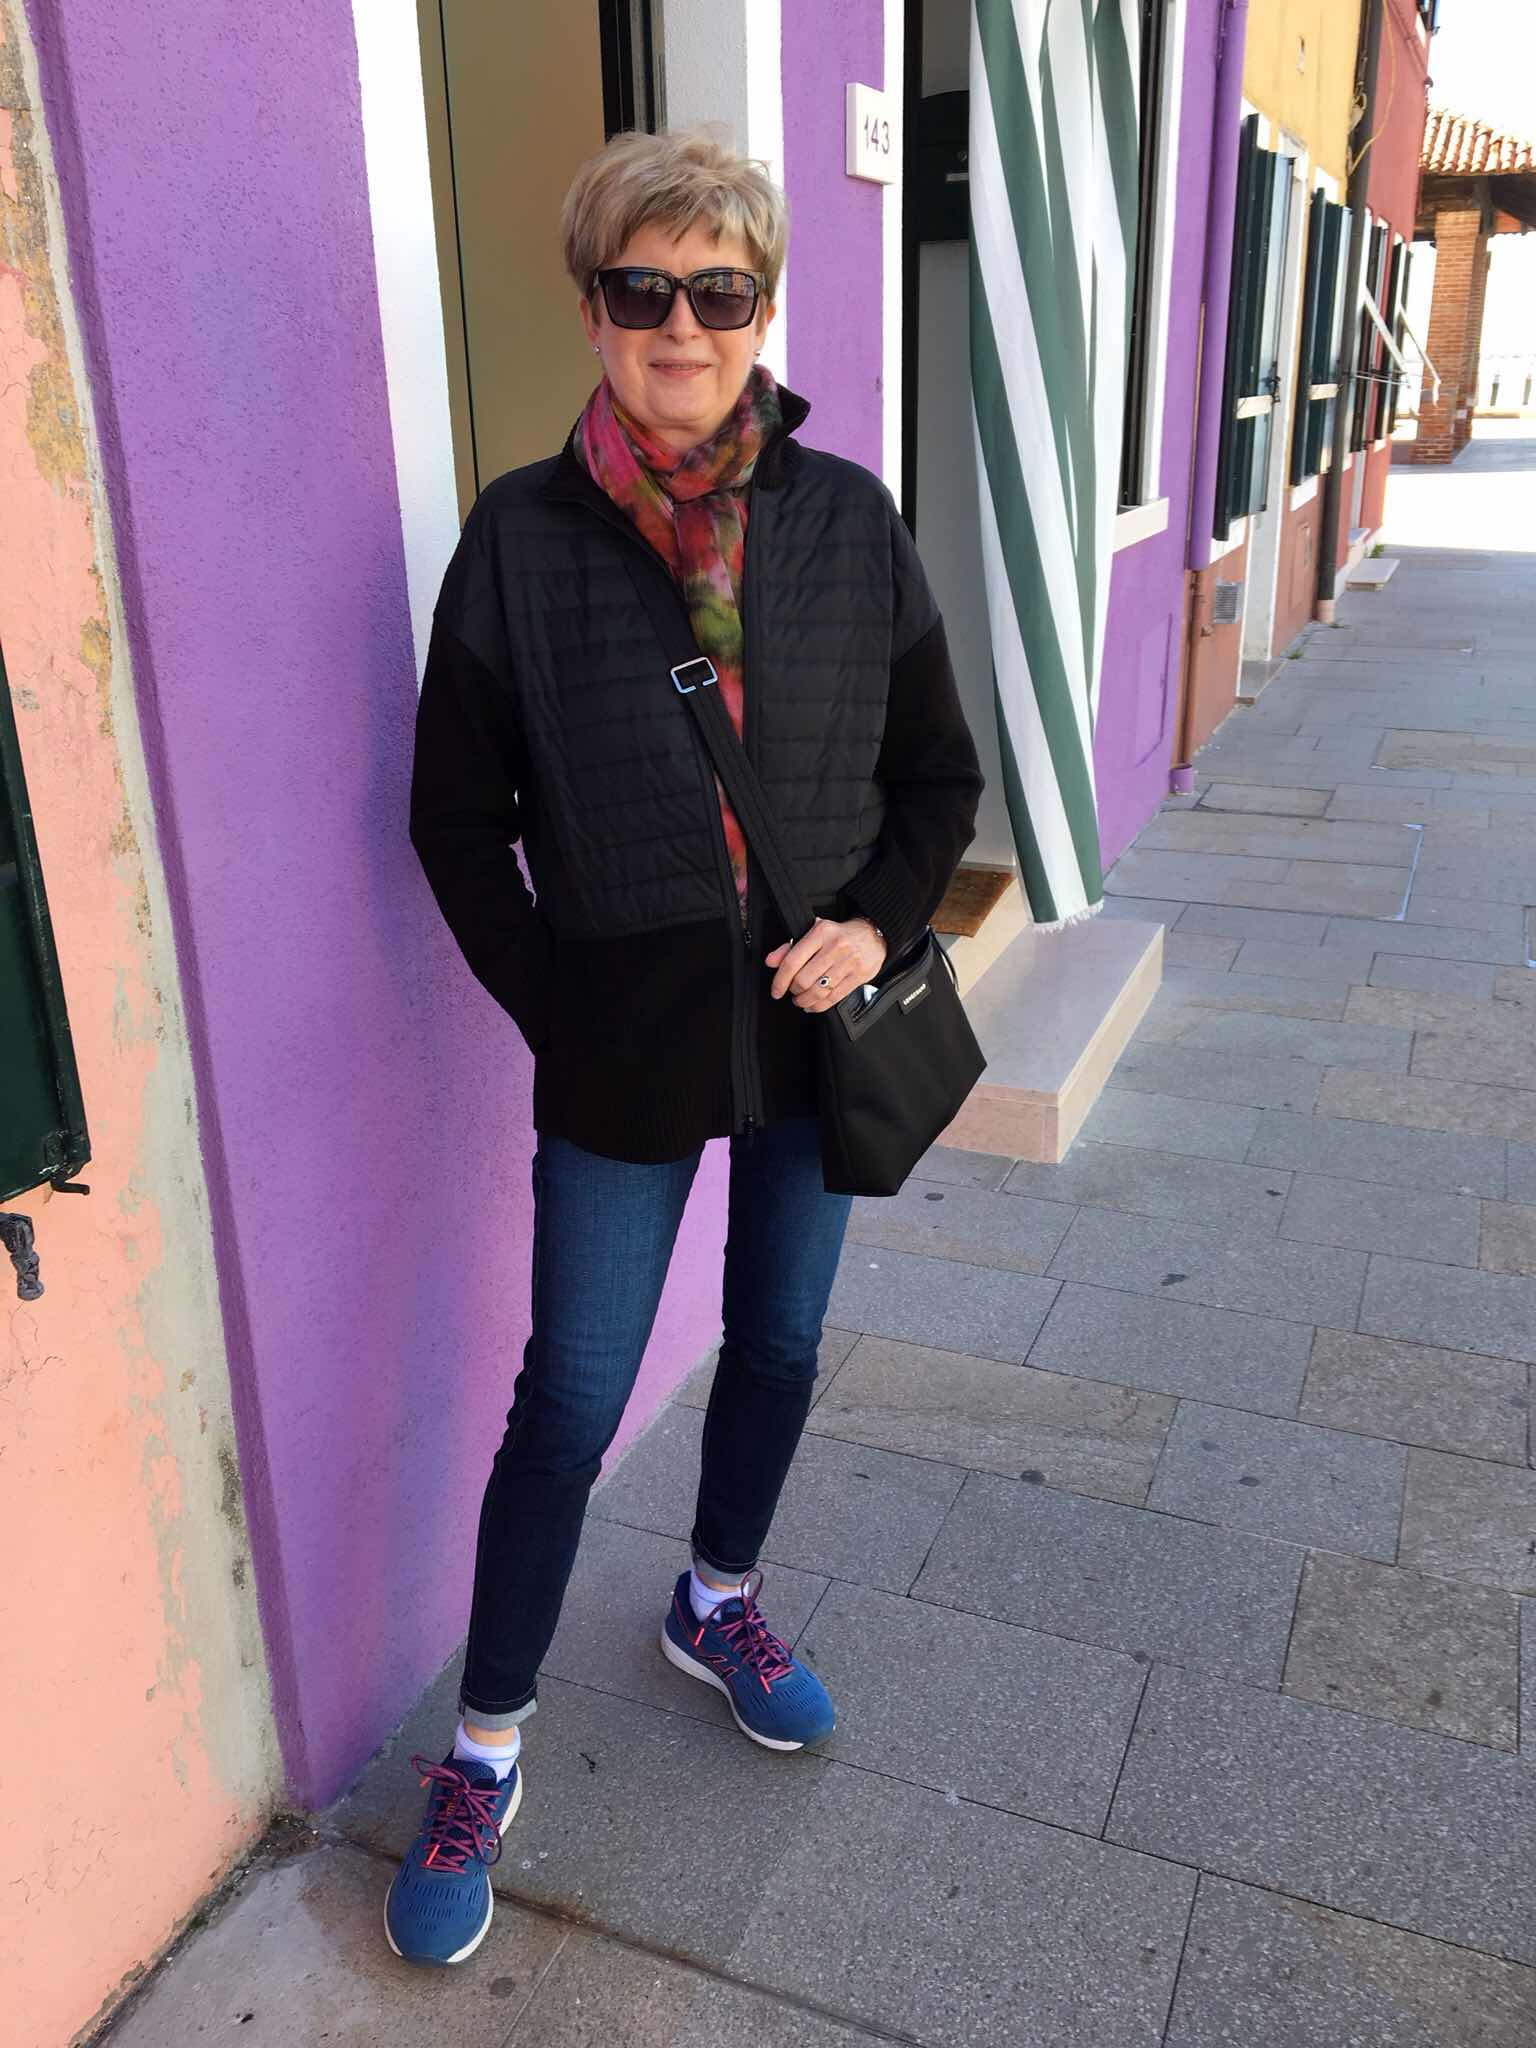 colorful houses, and woman smiling on Burano Island, Venice